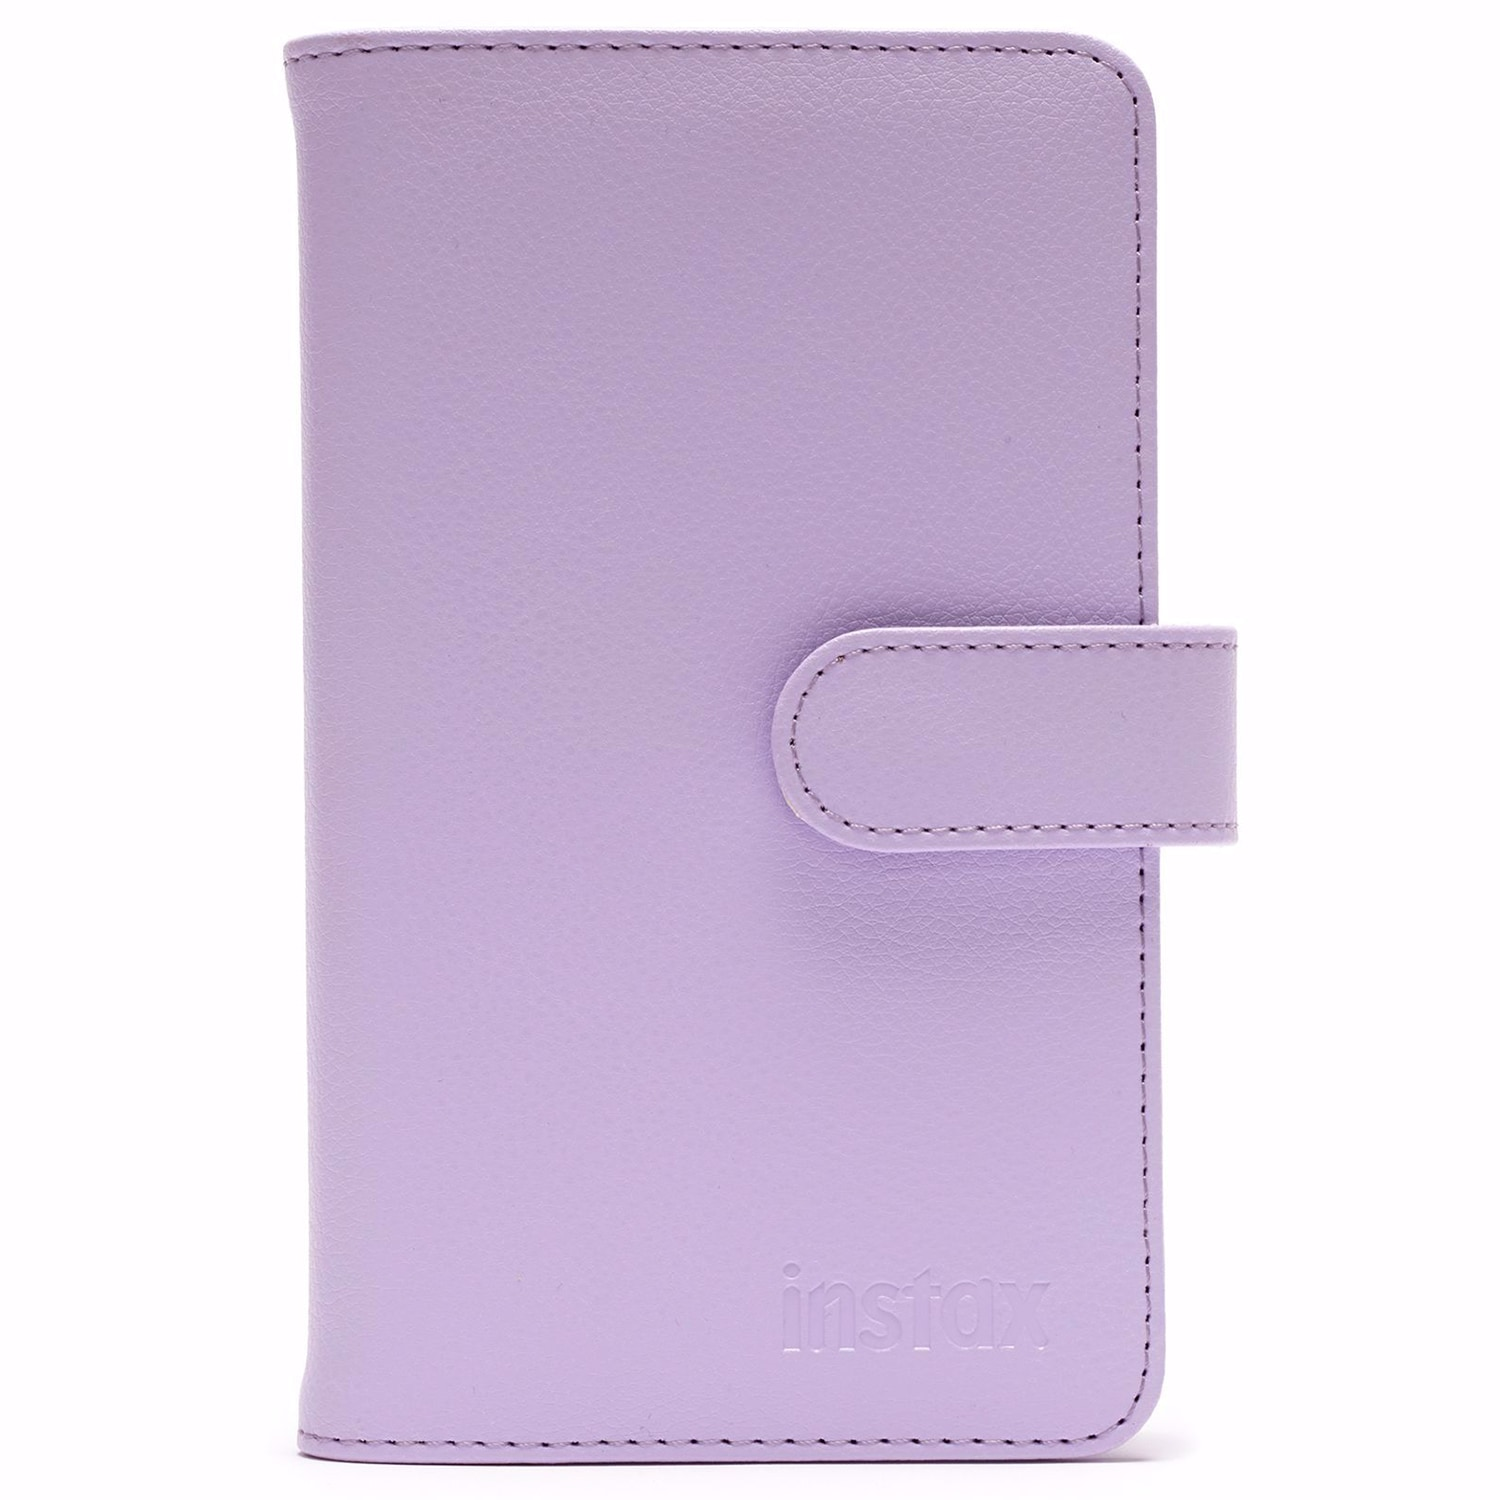 Fujifilm Instax Mini 11 Album Lilac-Purple